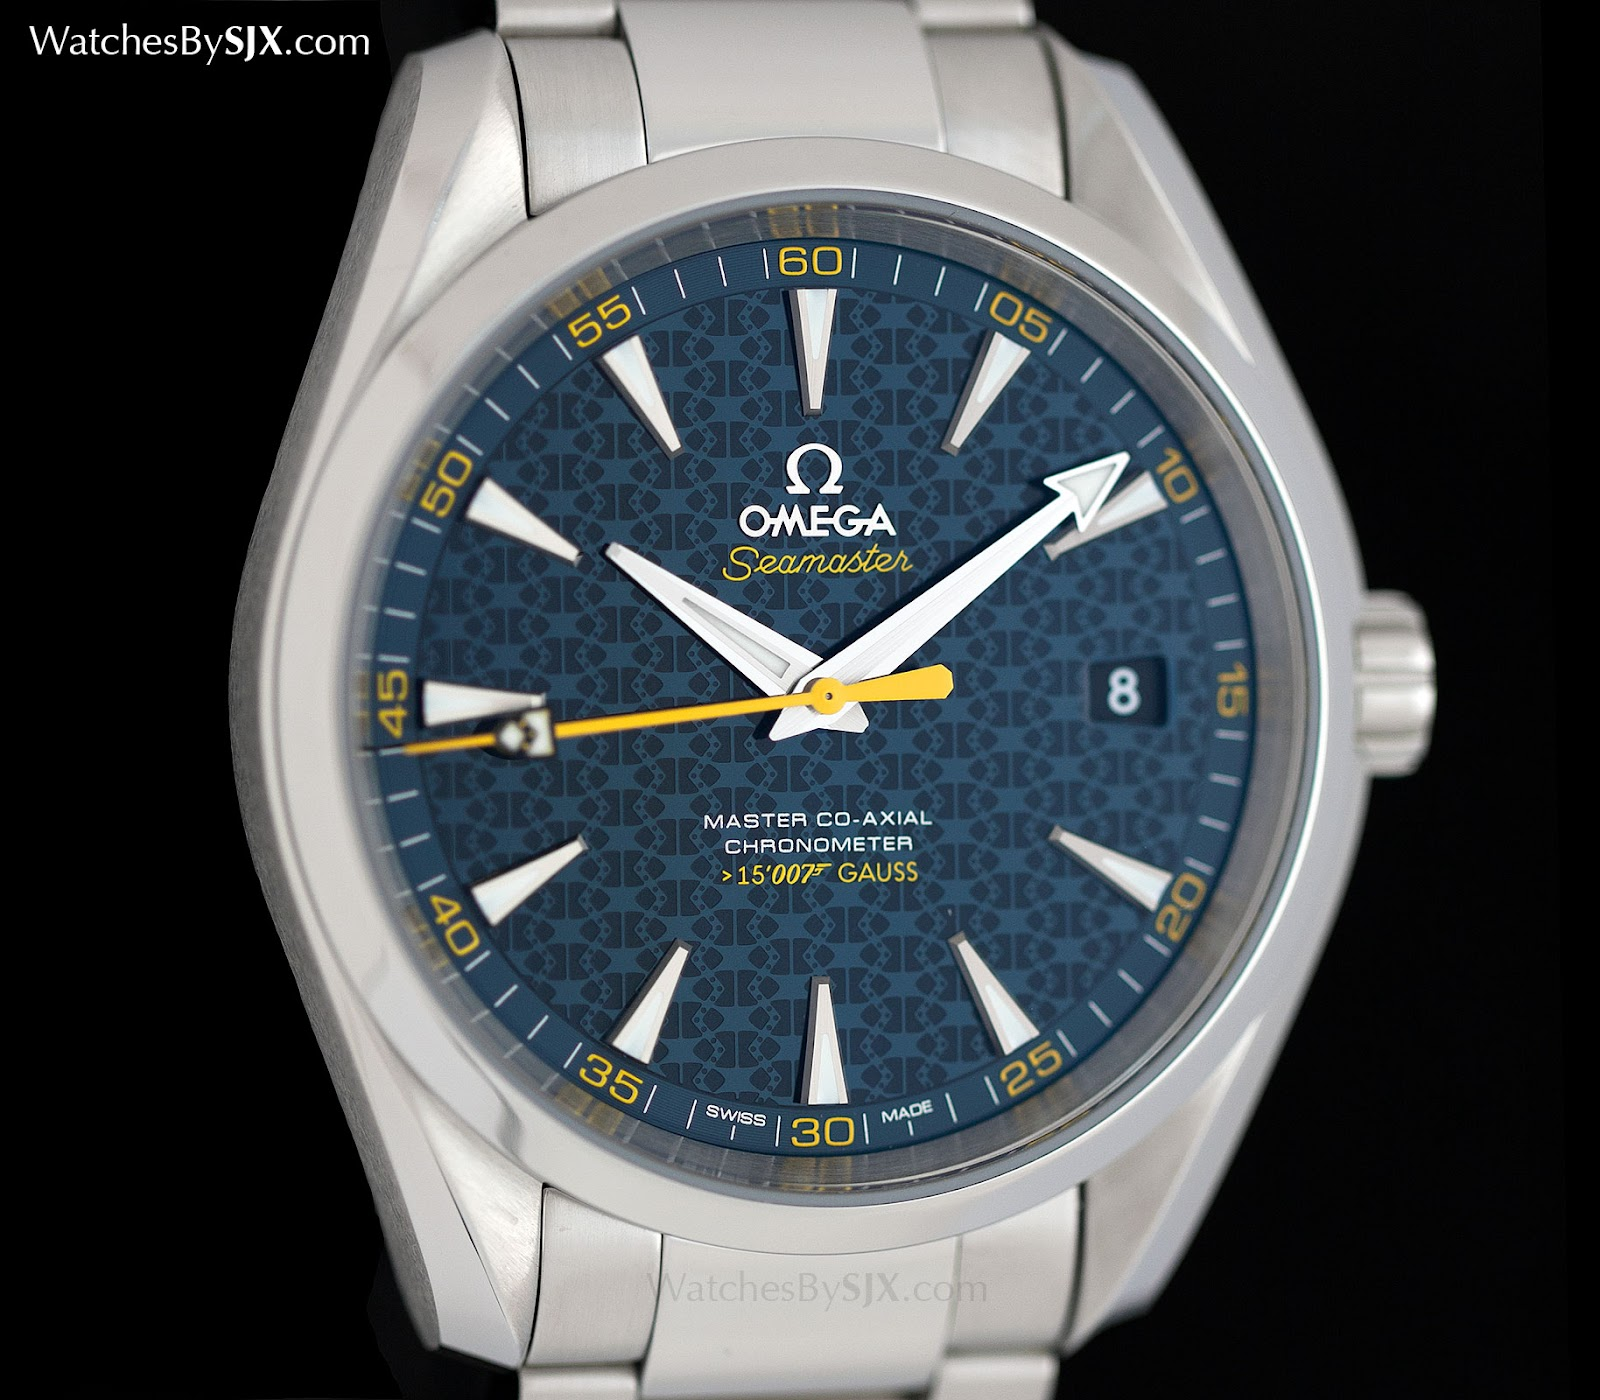 88994d1c8e0 Watches By SJX  Up Close With The Omega Seamaster Aqua Terra  15